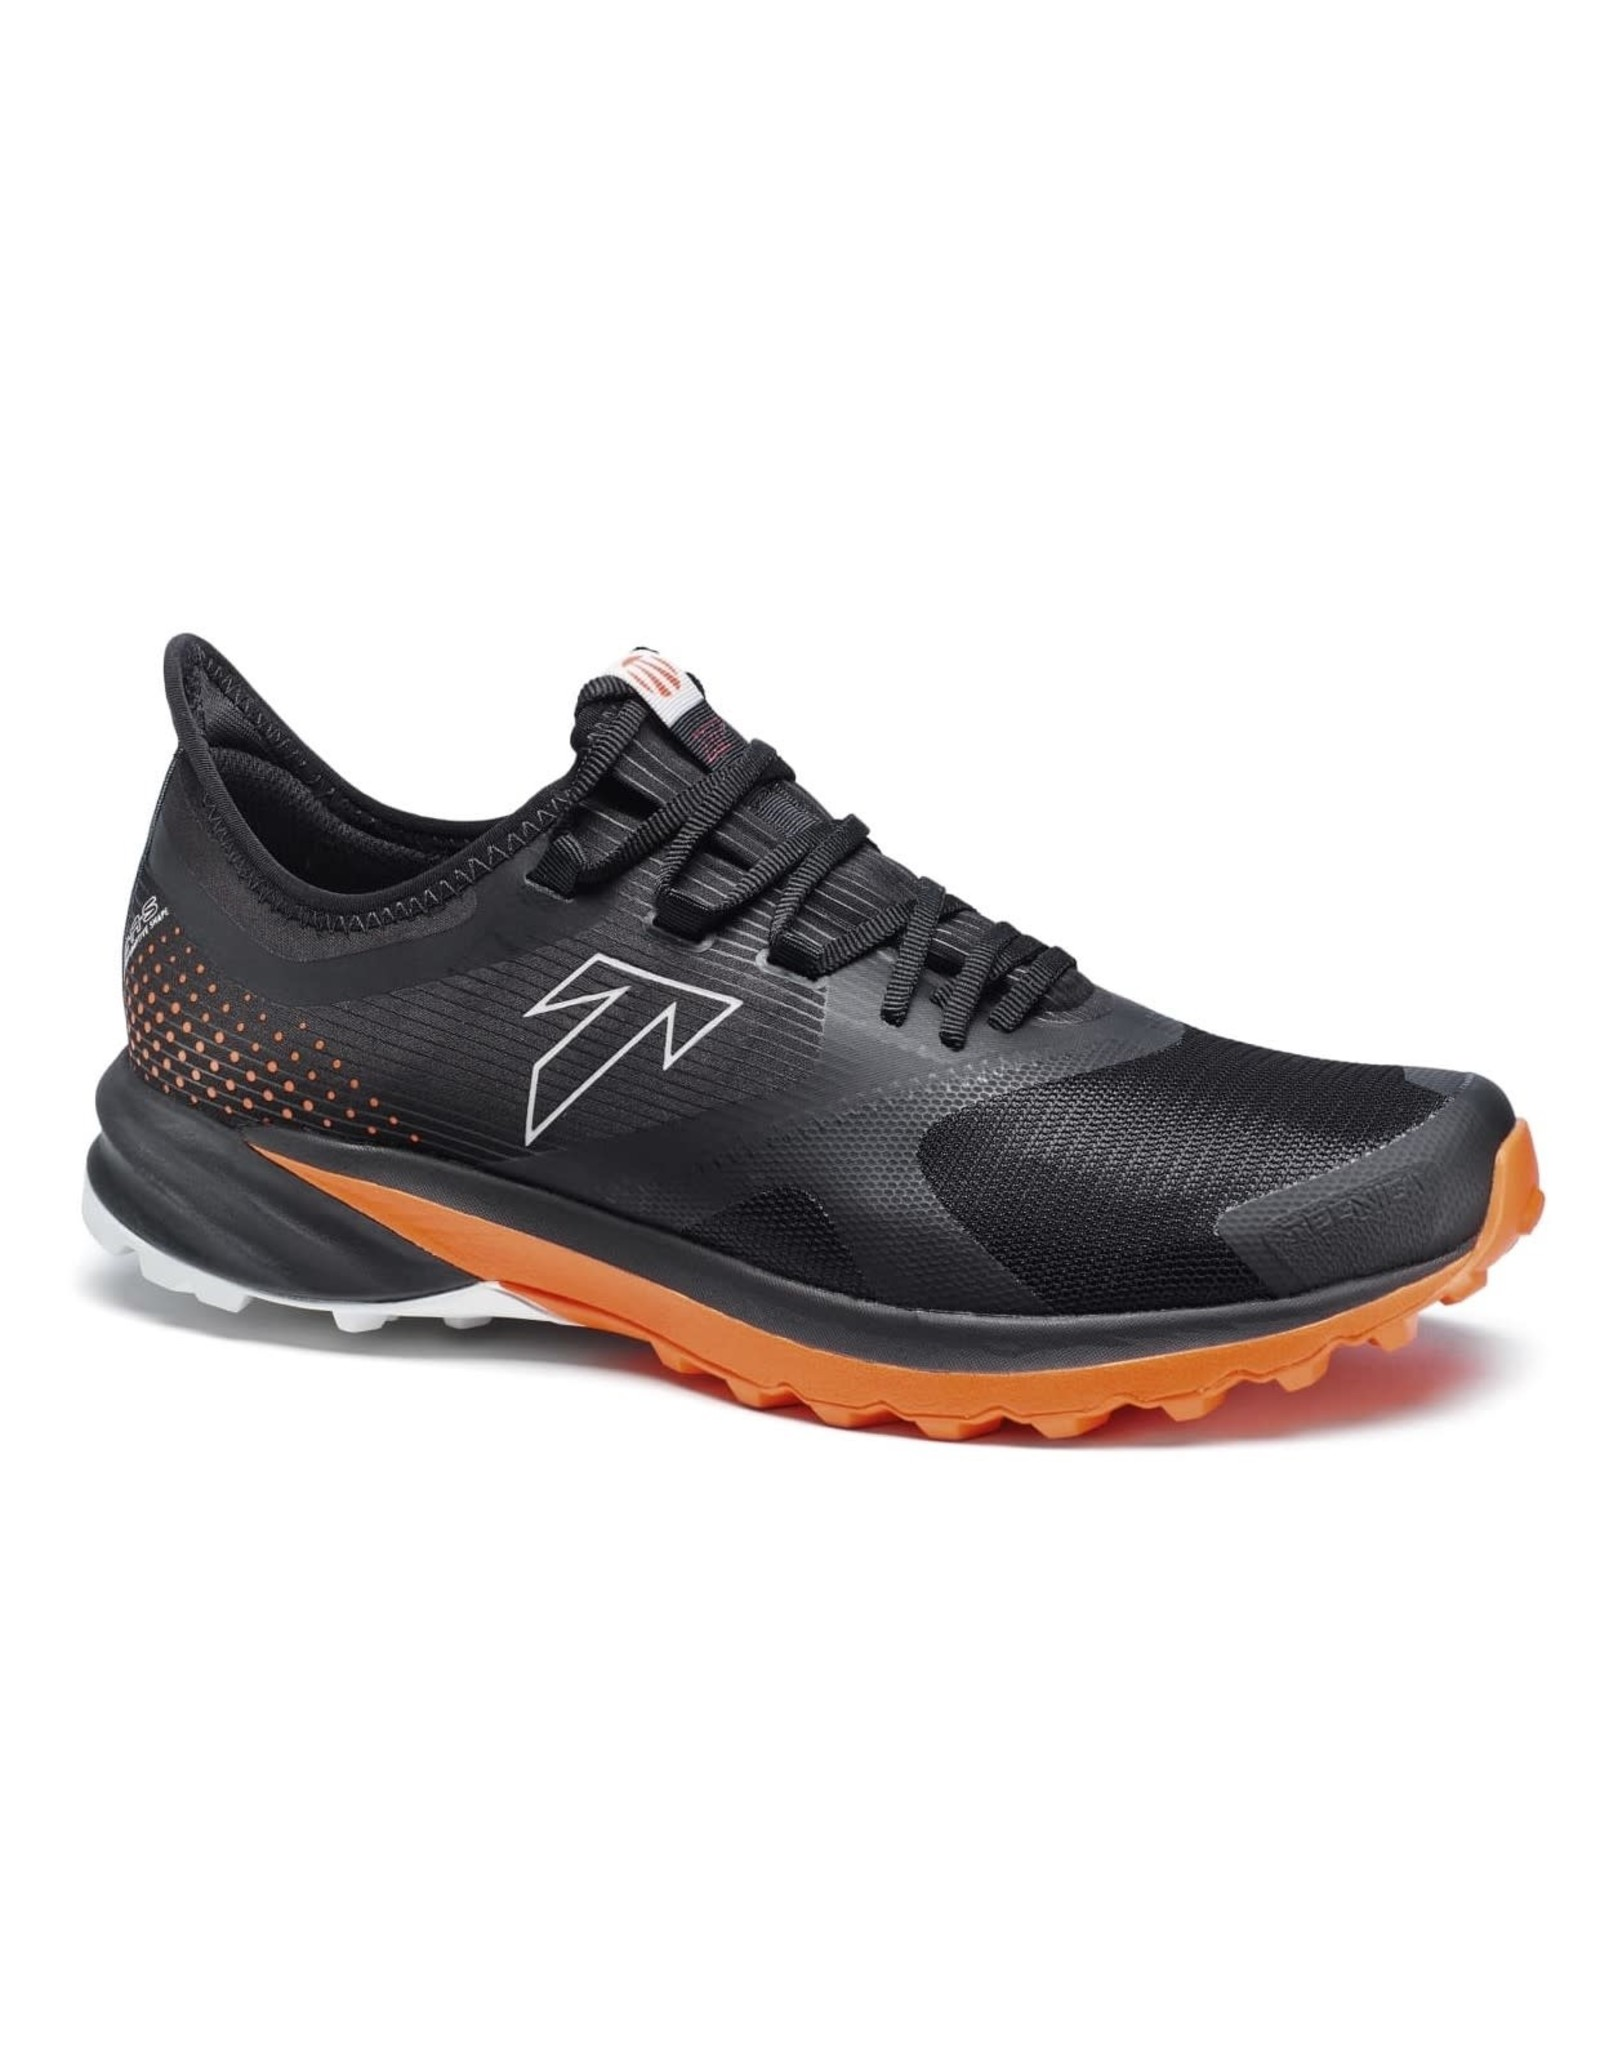 Tecnica Tecnica Origin XT Running Shoe- Men